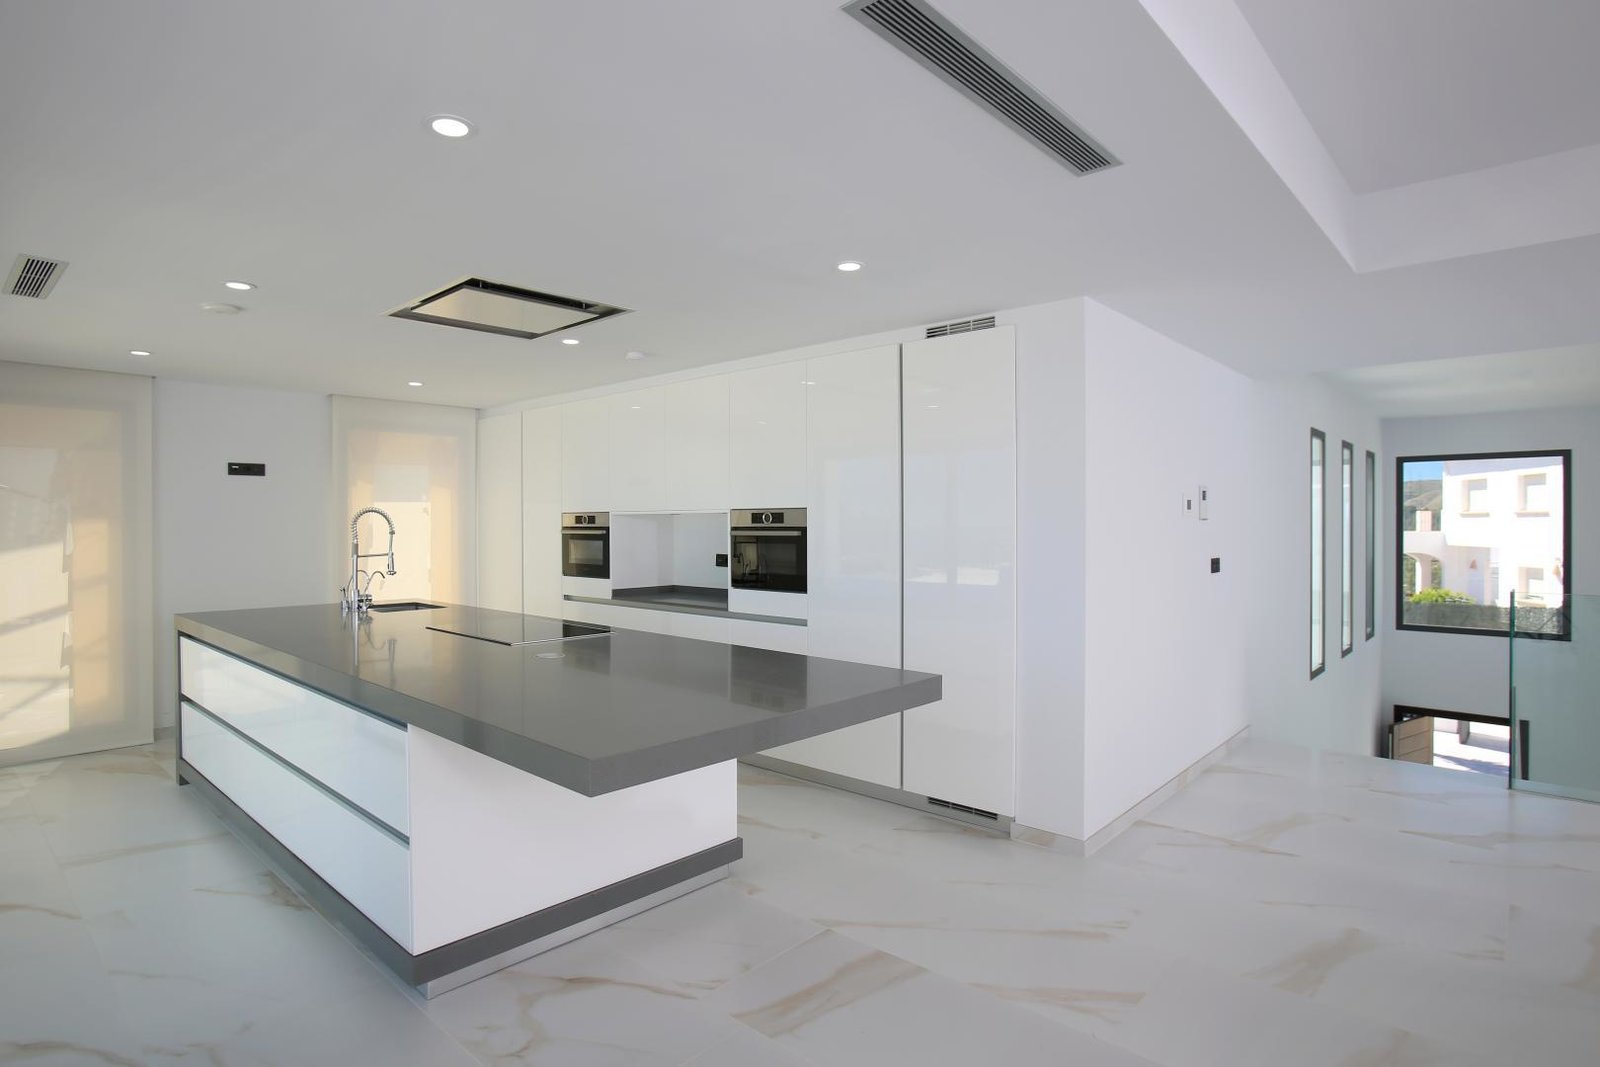 Kitchen Tagged: Kitchen, Engineered Quartz Counter, White Cabinet, Ceramic Tile Floor, Refrigerator, Wall Oven, Porcelain Tile Floor, Ceiling Lighting, Cooktops, Microwave, Range Hood, Dishwasher, Drop In Sink, and Undermount Sink.  Best Photos from Villa Demeter